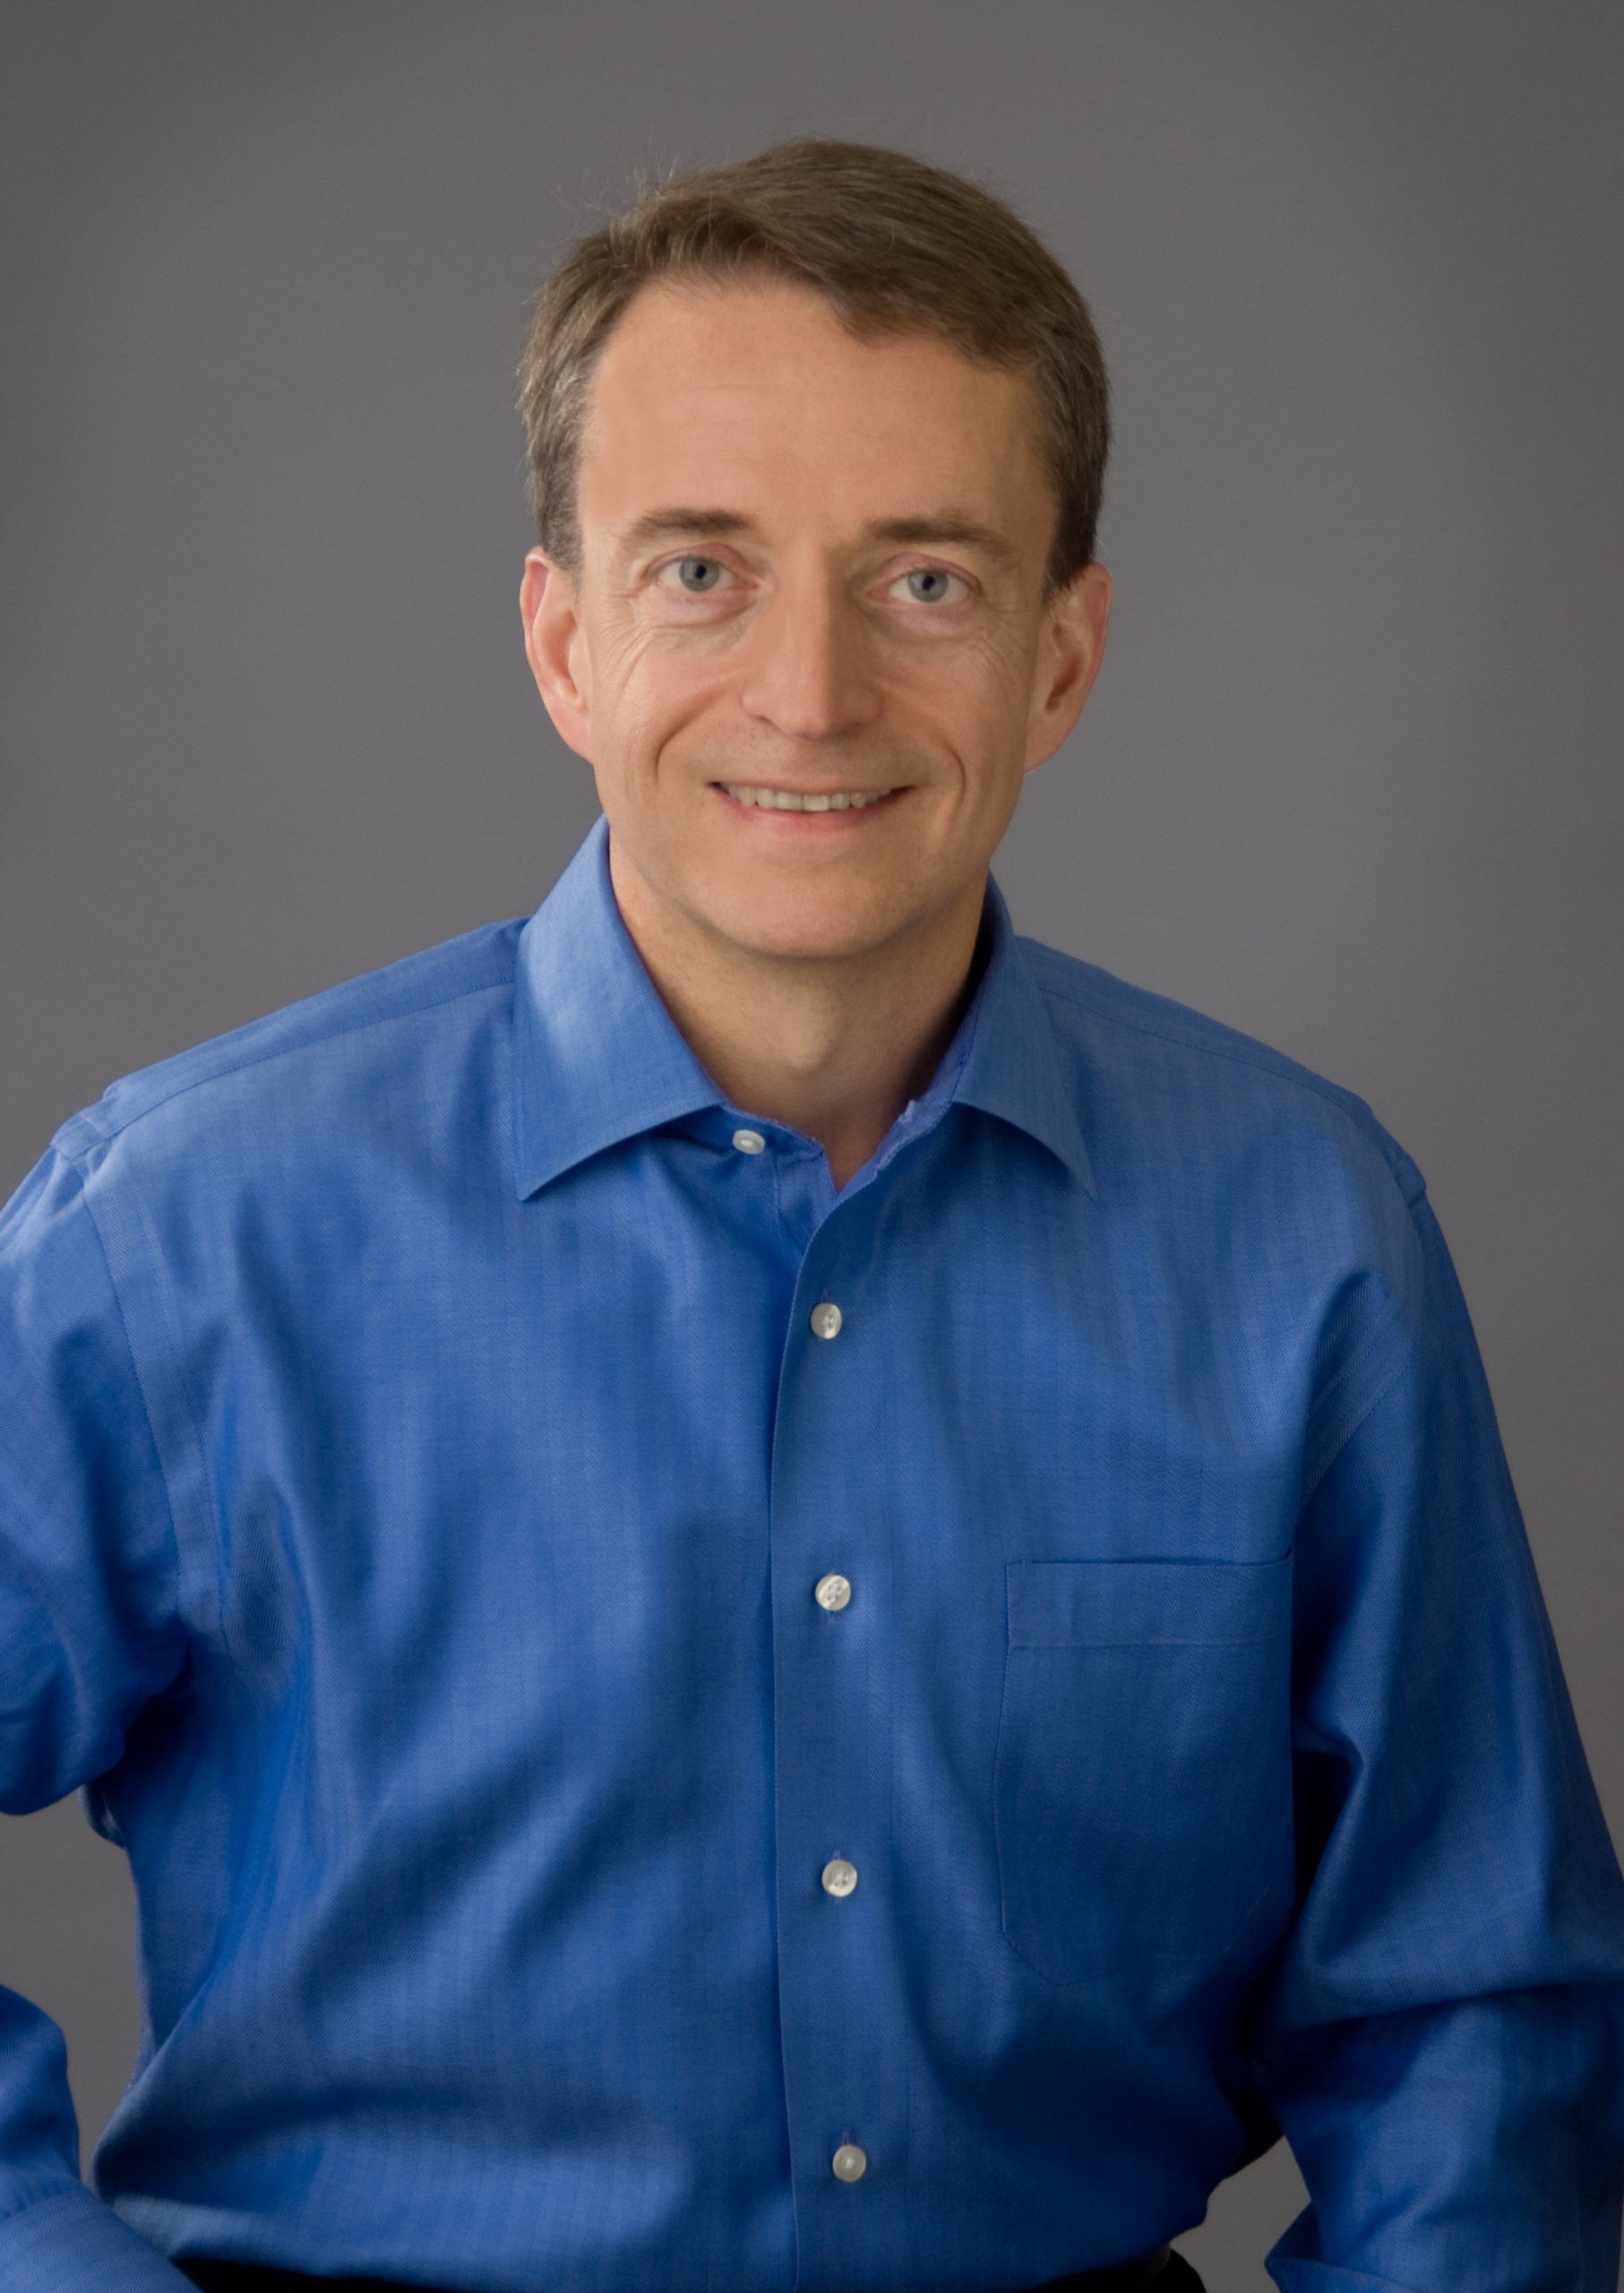 Intel Appoints Tech Industry Leader Pat Gelsinger as New CEO - Image 1